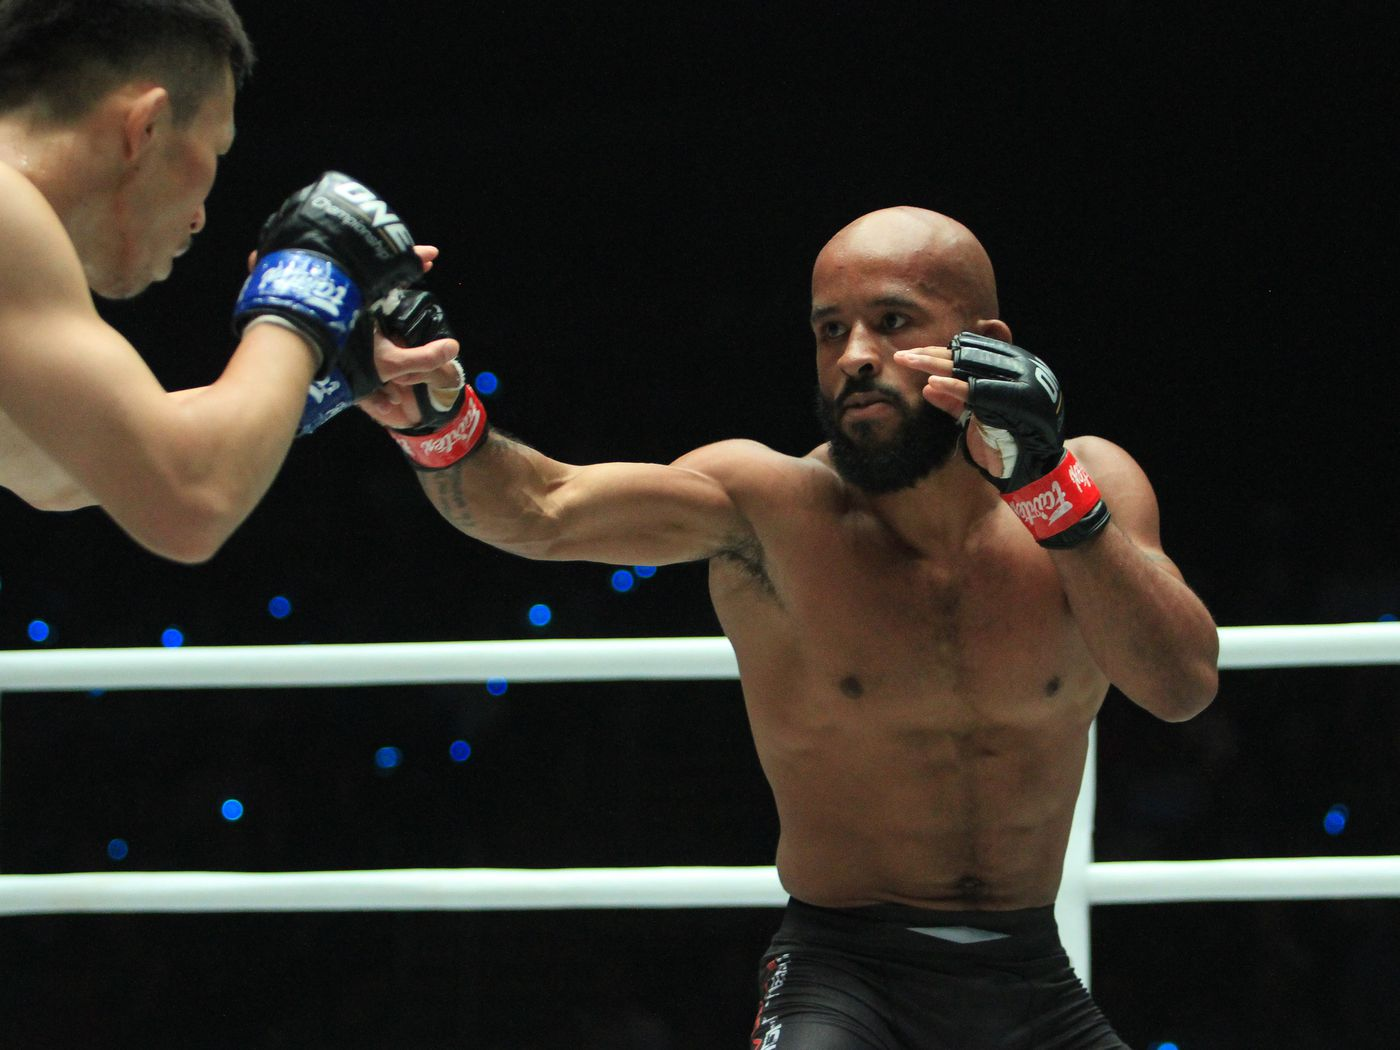 ONE Championship: Century live stream, results, and discussion